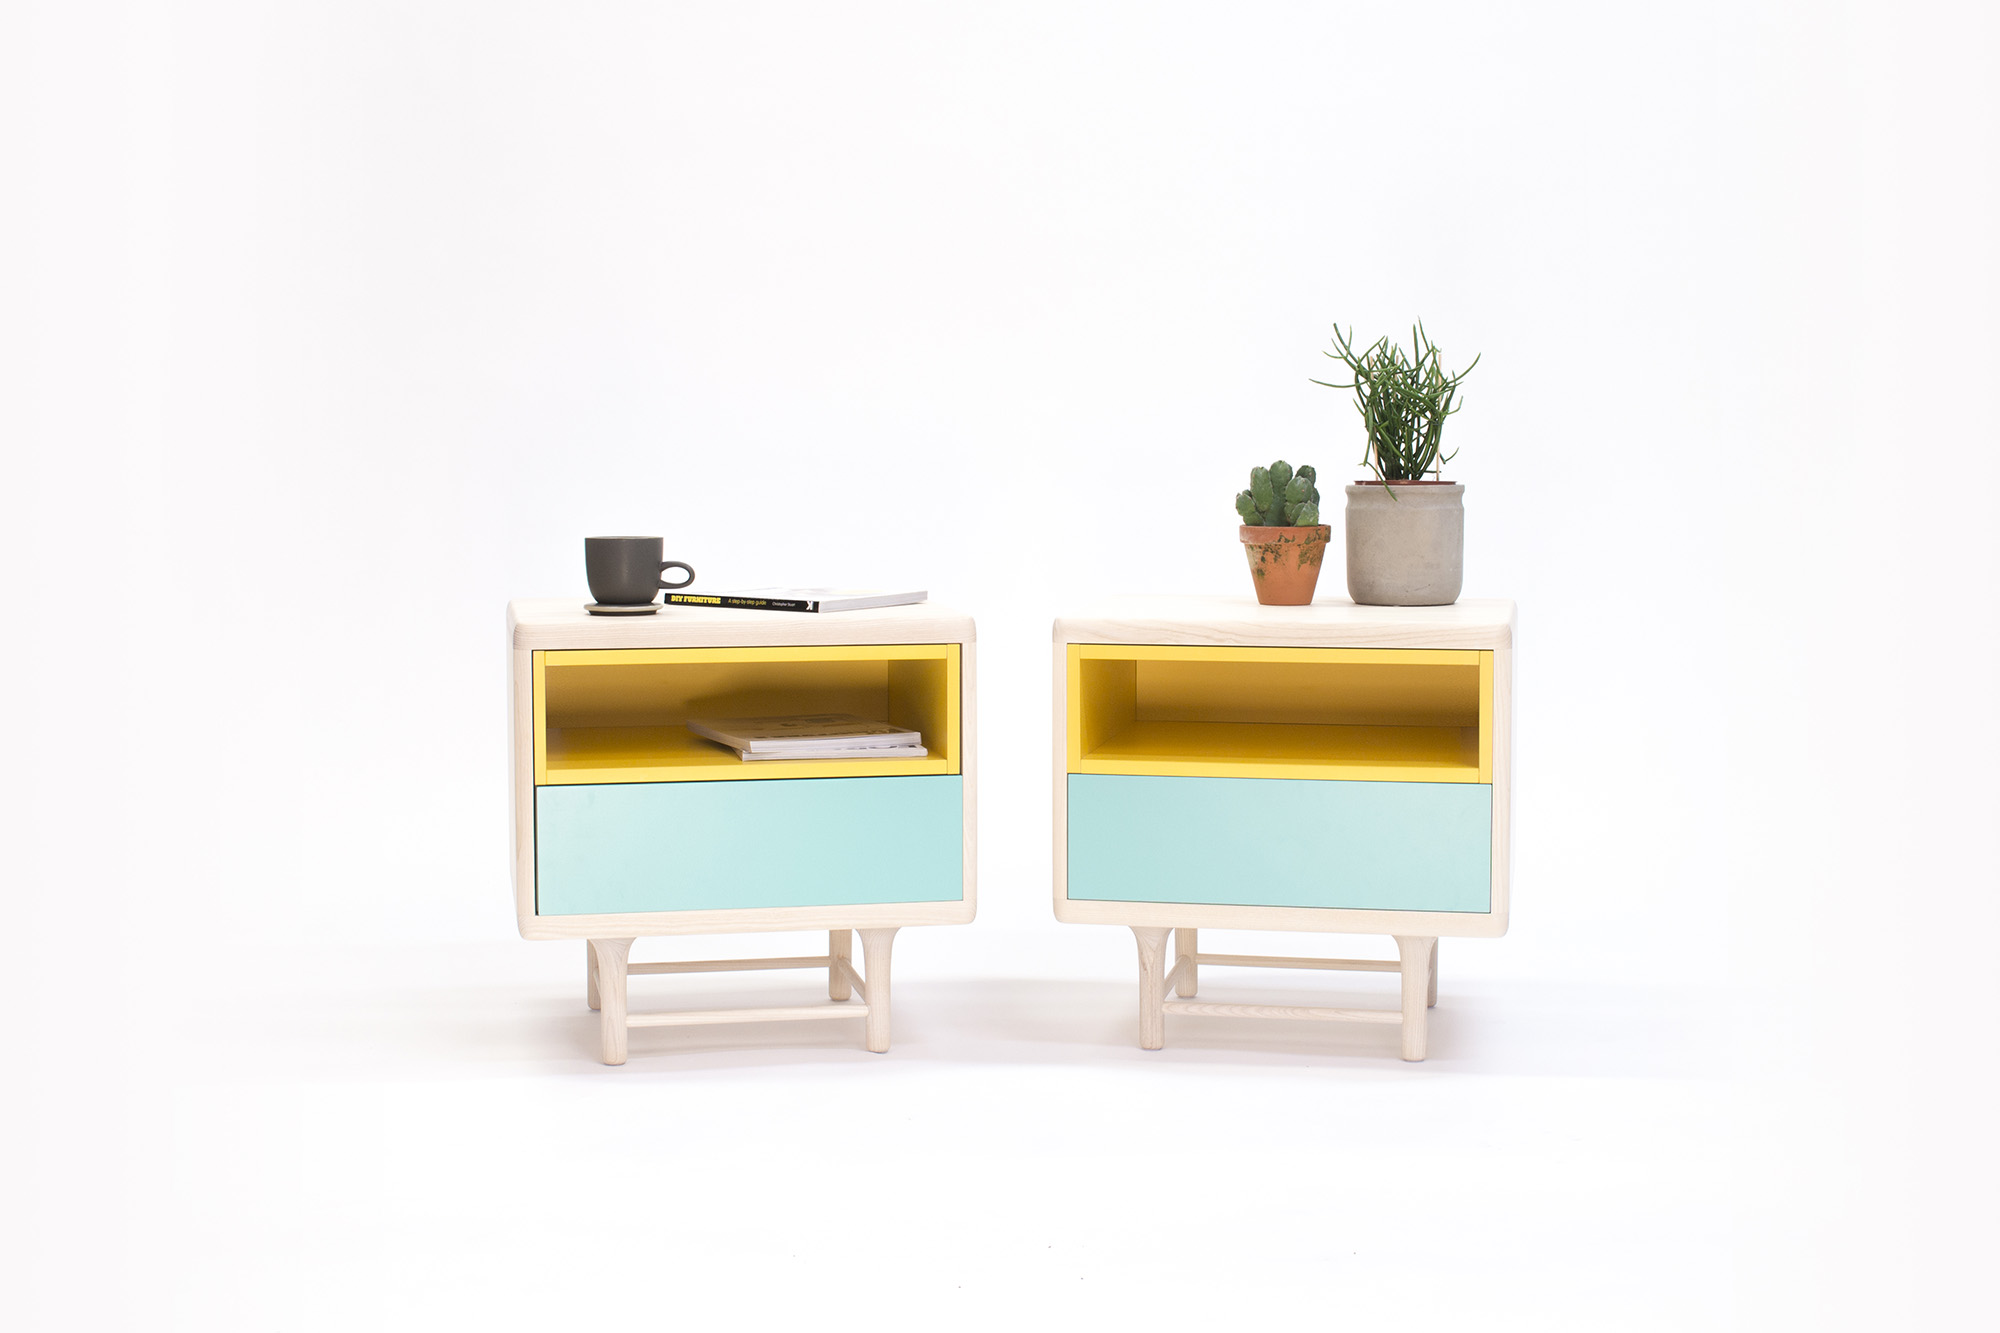 Minimal scandinavian furniture by designer carlos jim nez for Danish design furniture